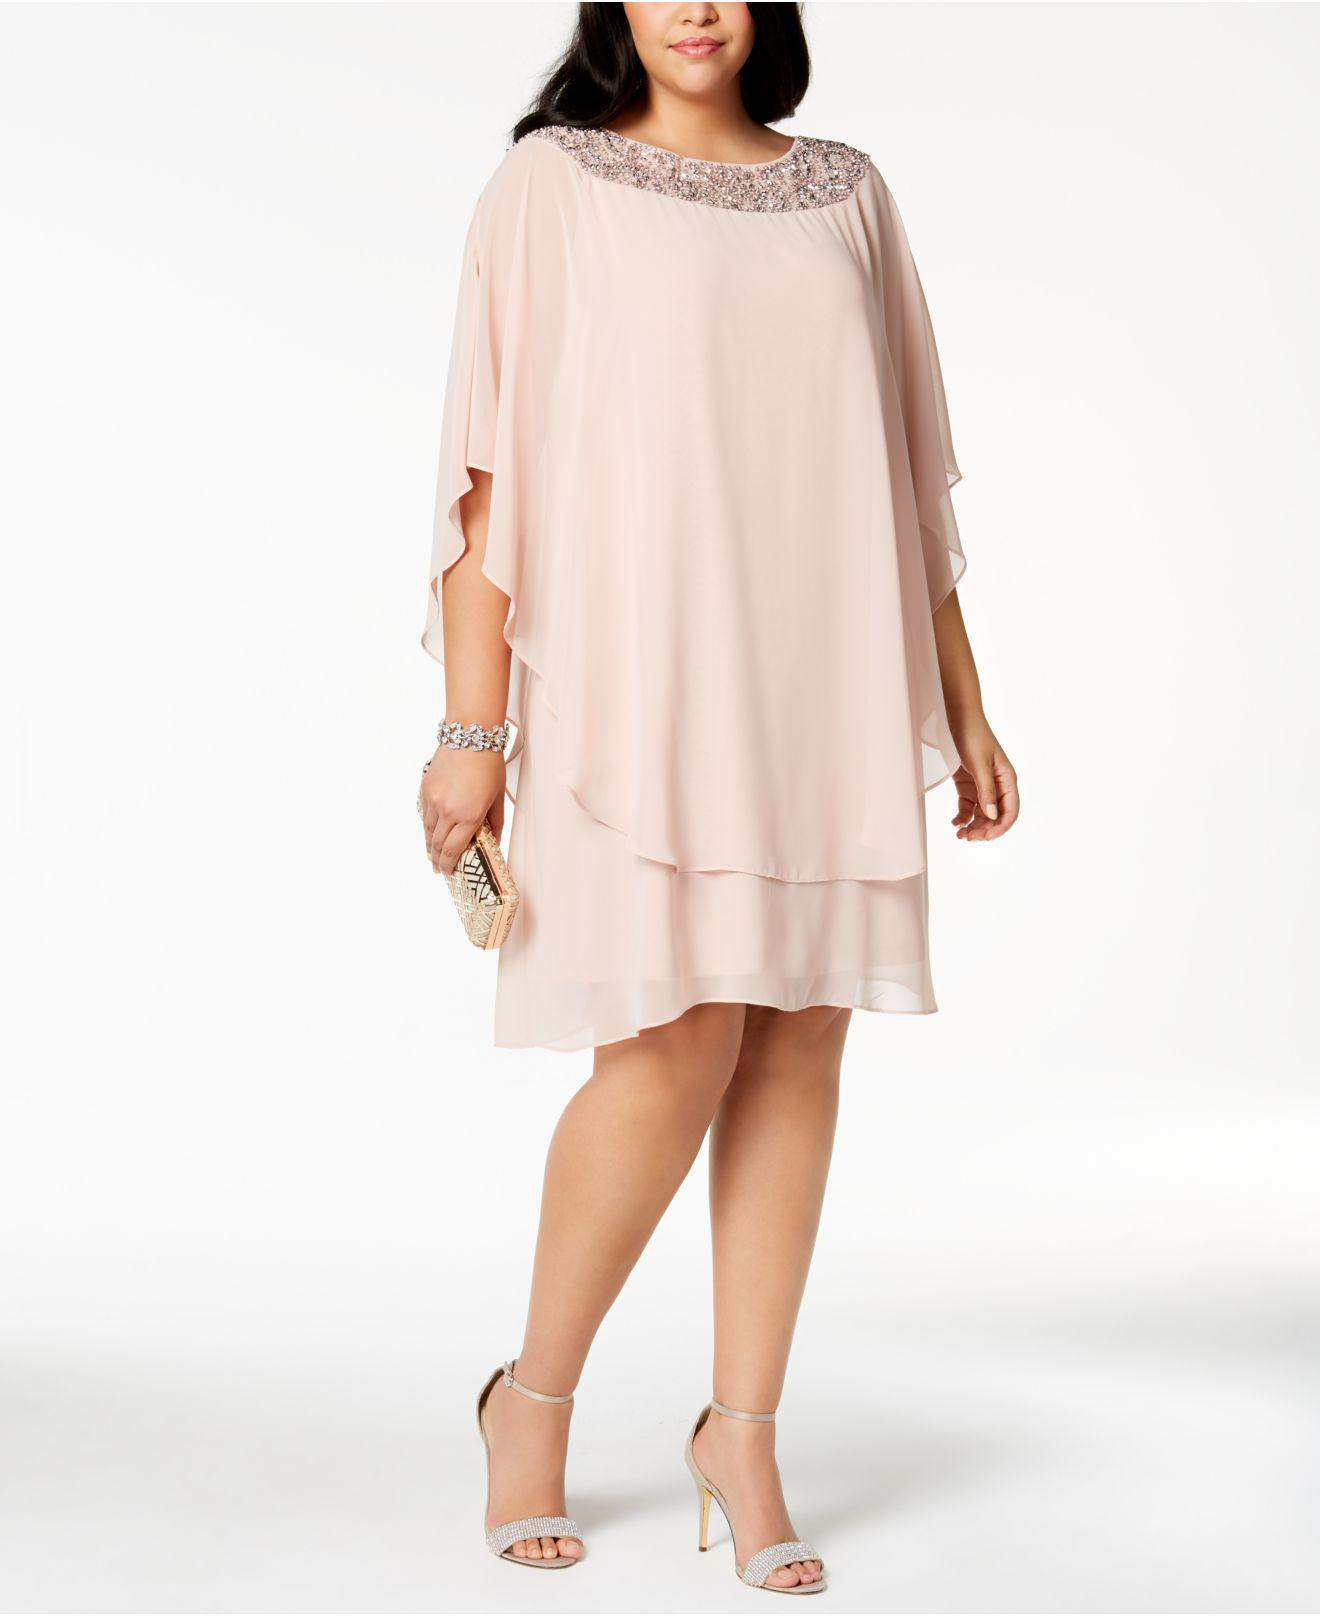 4620c0e5dae6 Xscape Chiffon Overlay Beaded Jersey Dress Plus Size - Photo Dress ...